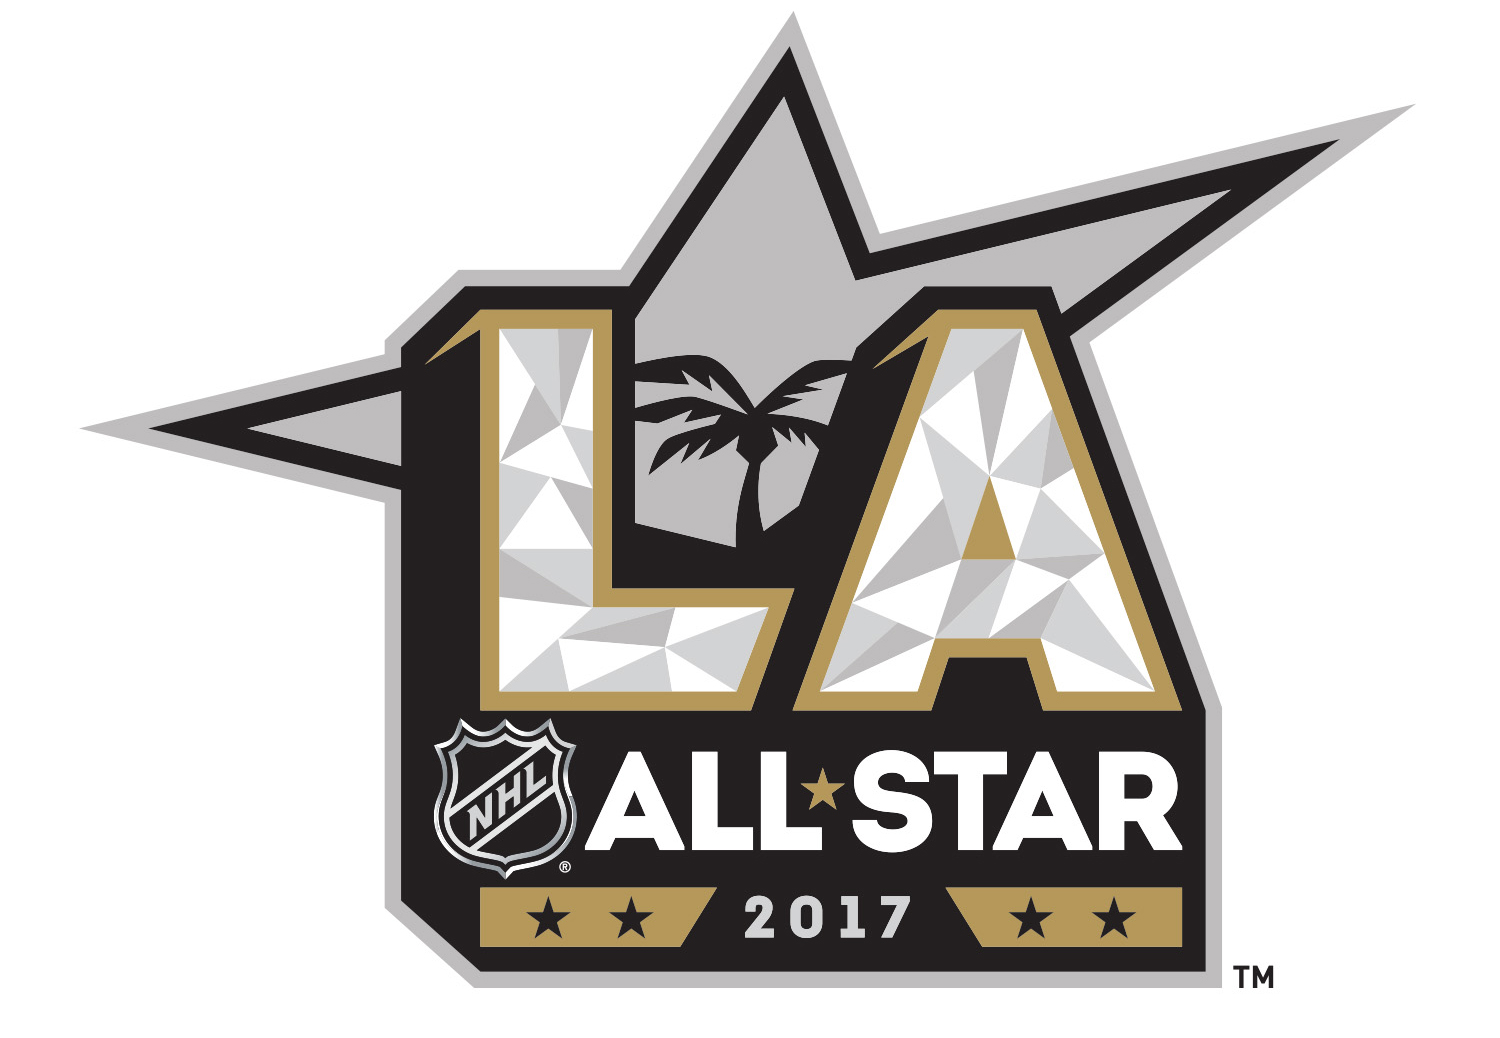 Metropolitan edges Pacific 4-3 in intense finish to NHL All-Star Game